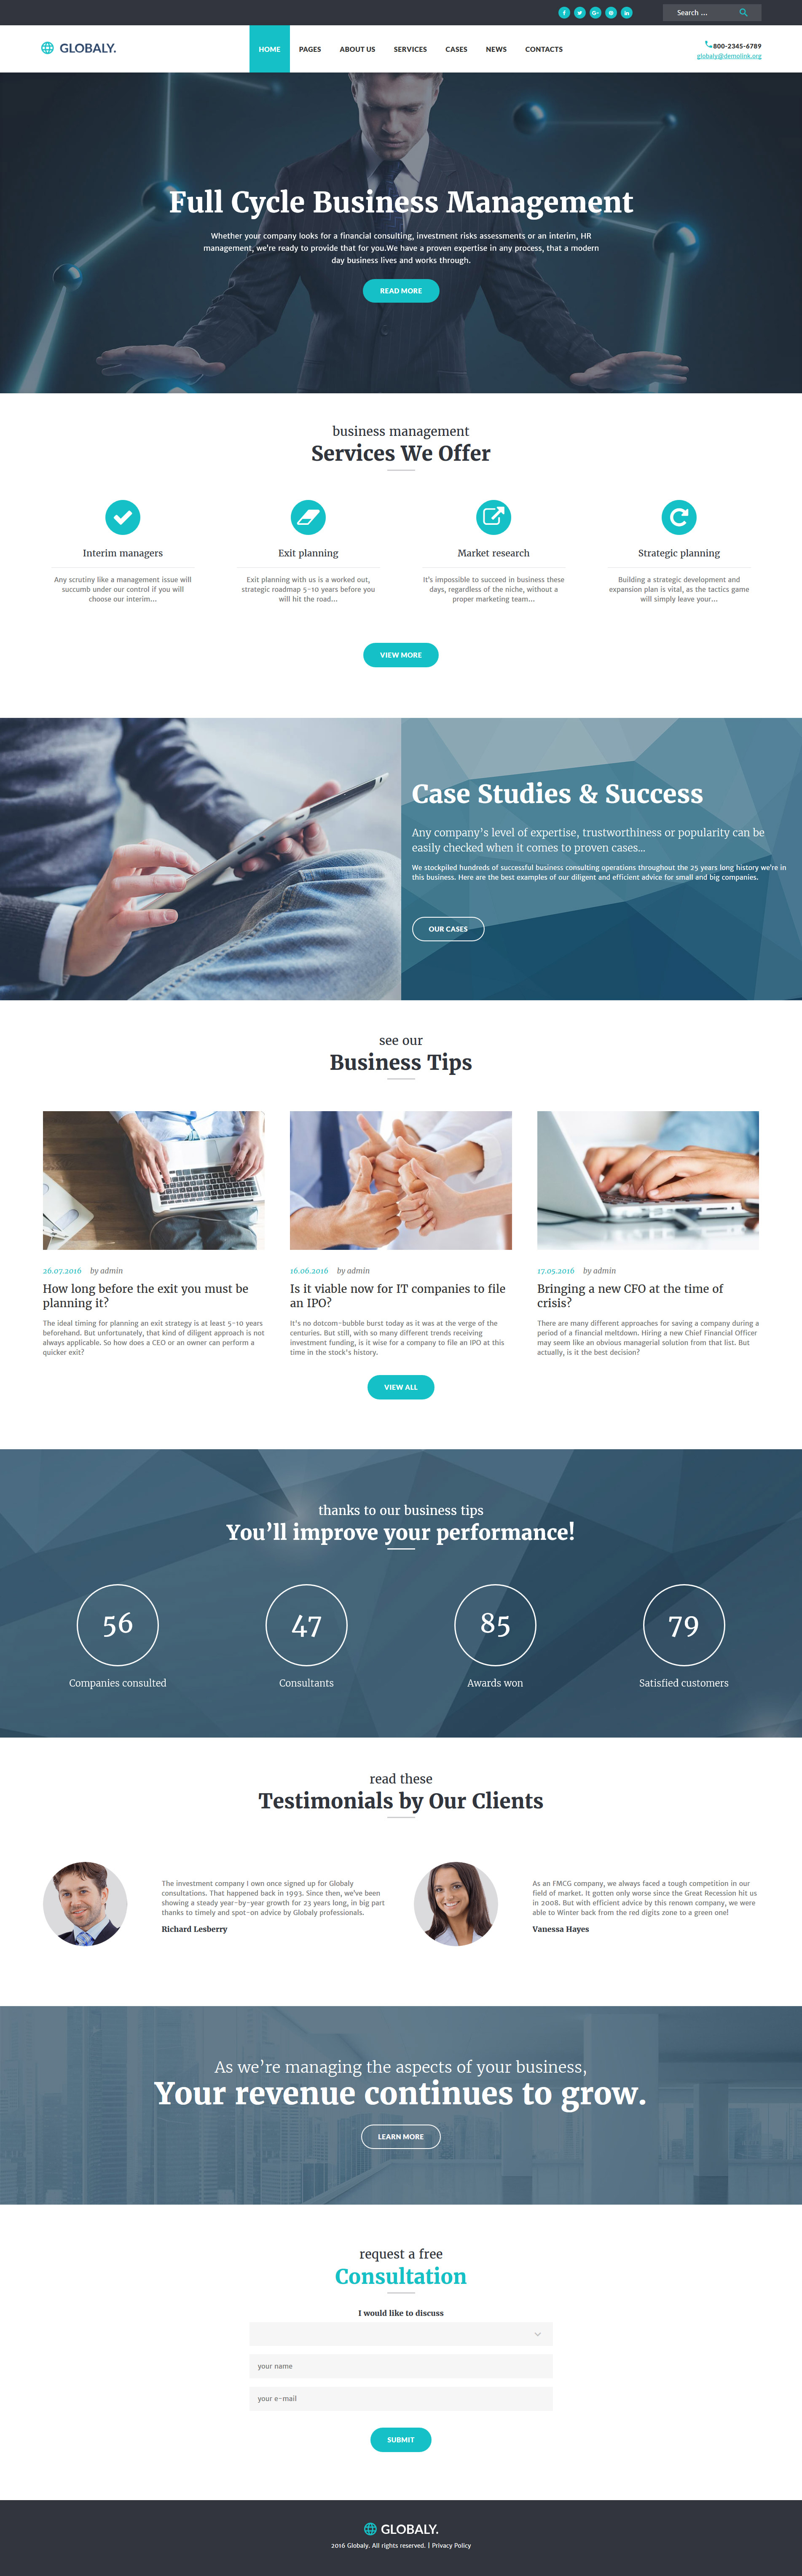 Responsivt Globaly - Full Cycle Business Management & Consulting Responsive WordPress-tema #52382 - skärmbild